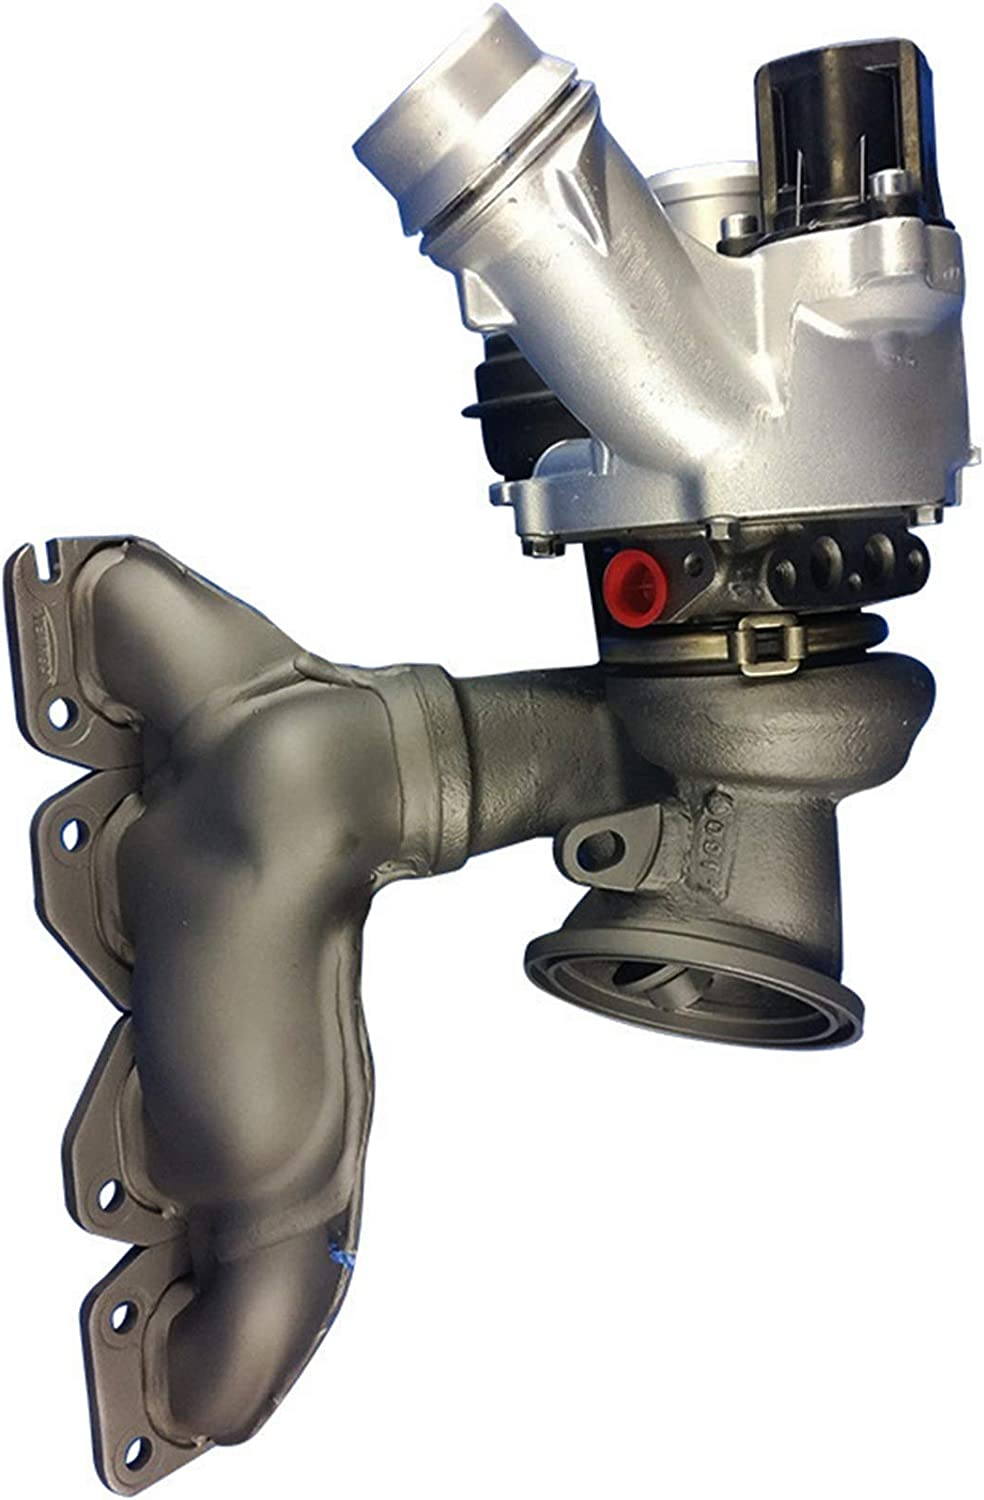 Sz excellence Machparts MGT1549ZDL Turbo Charger Turbocharger 820021-0001 Portland Mall